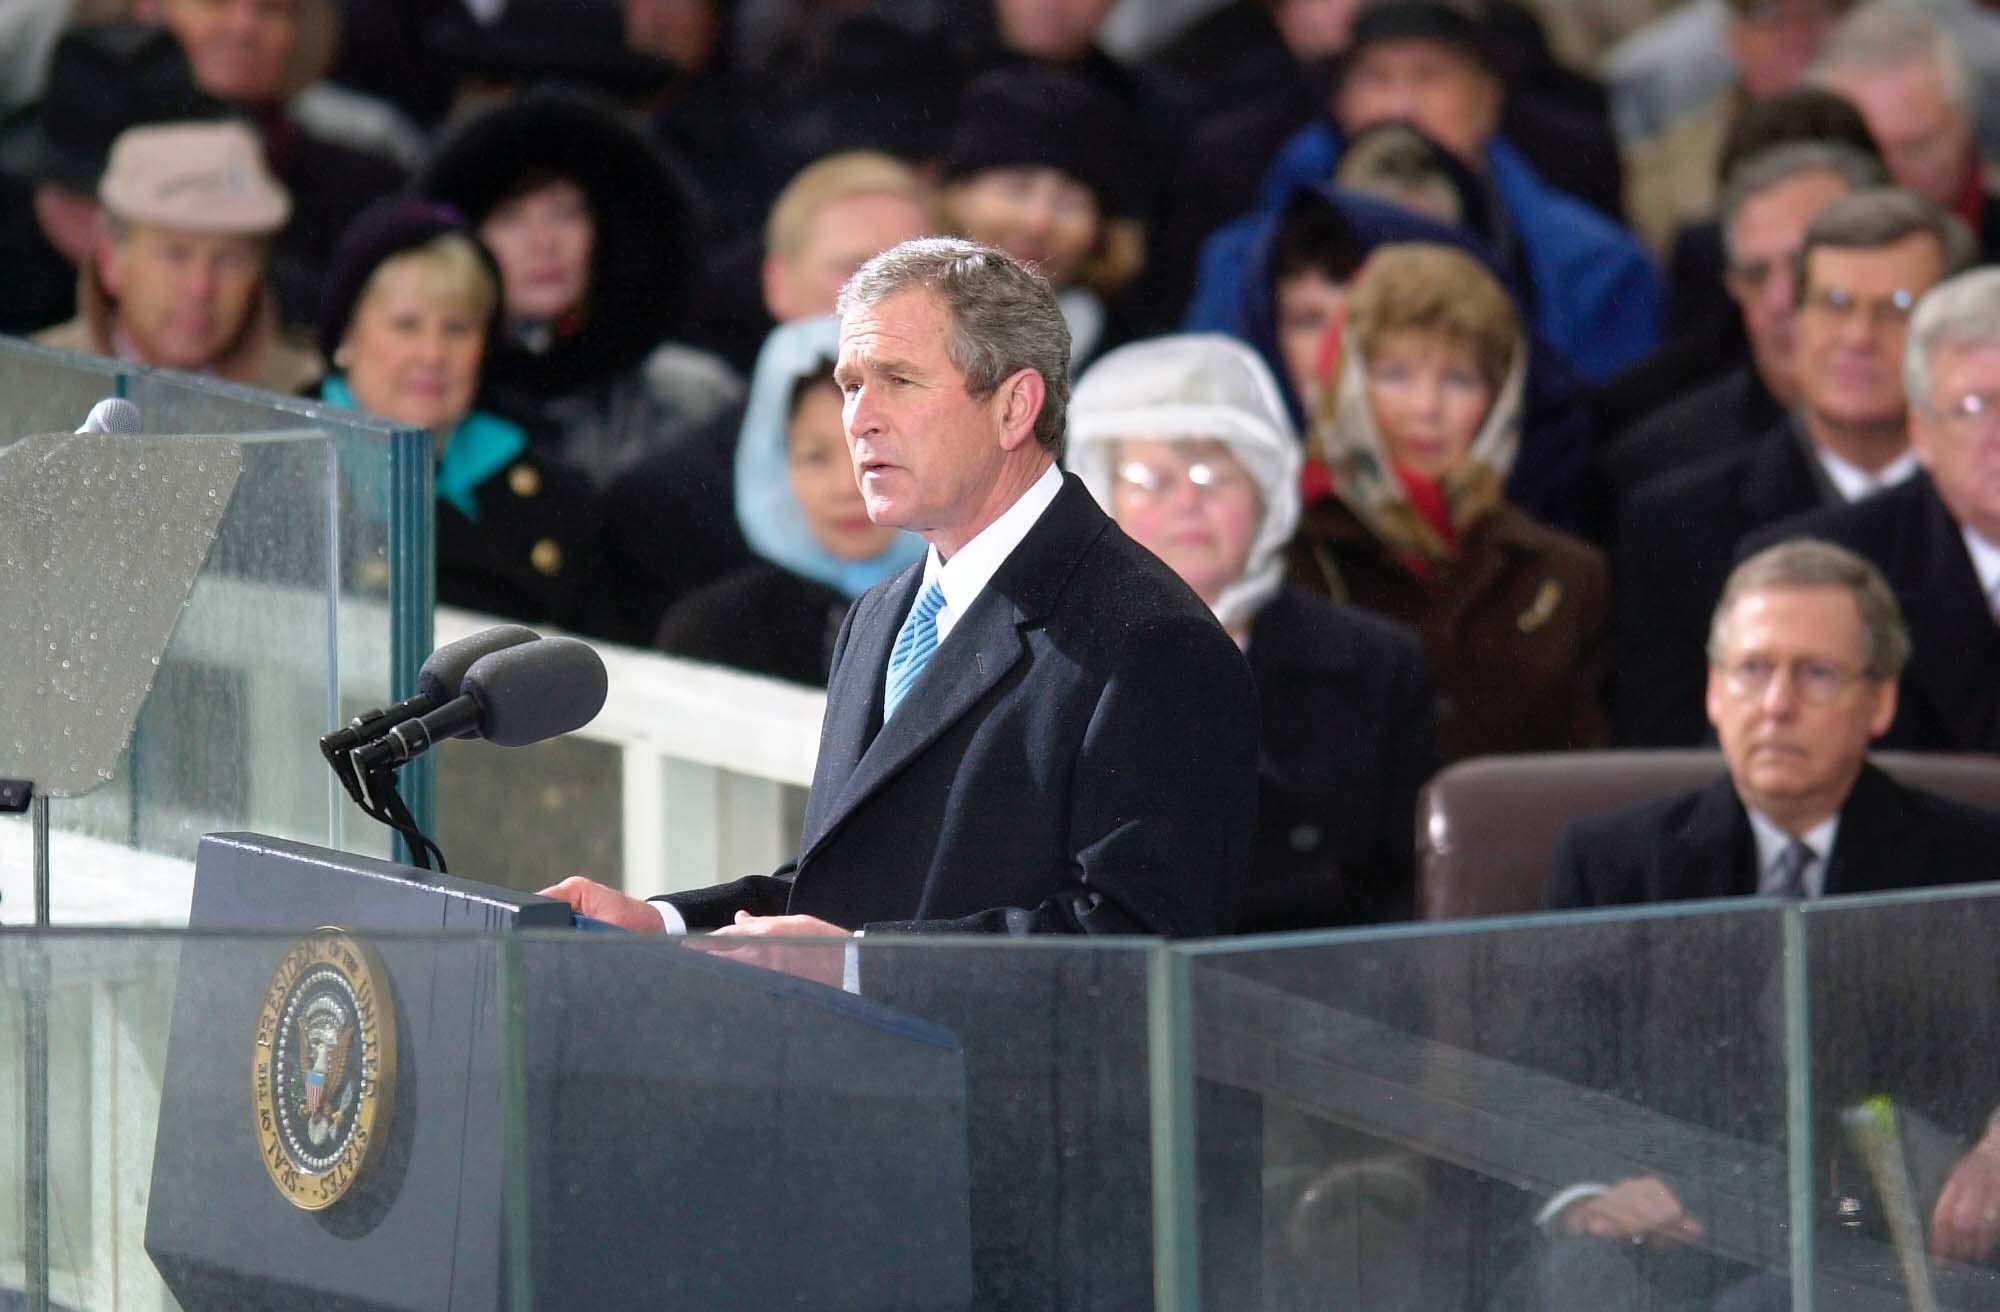 president bush's second inaugural address President bush' second inaugural address essay sample on a warmer-than-average day in early 2005, president george w bush gave his second inaugural address in front of the us capitol and witnessed by thousands in person and perhaps millions around the world.